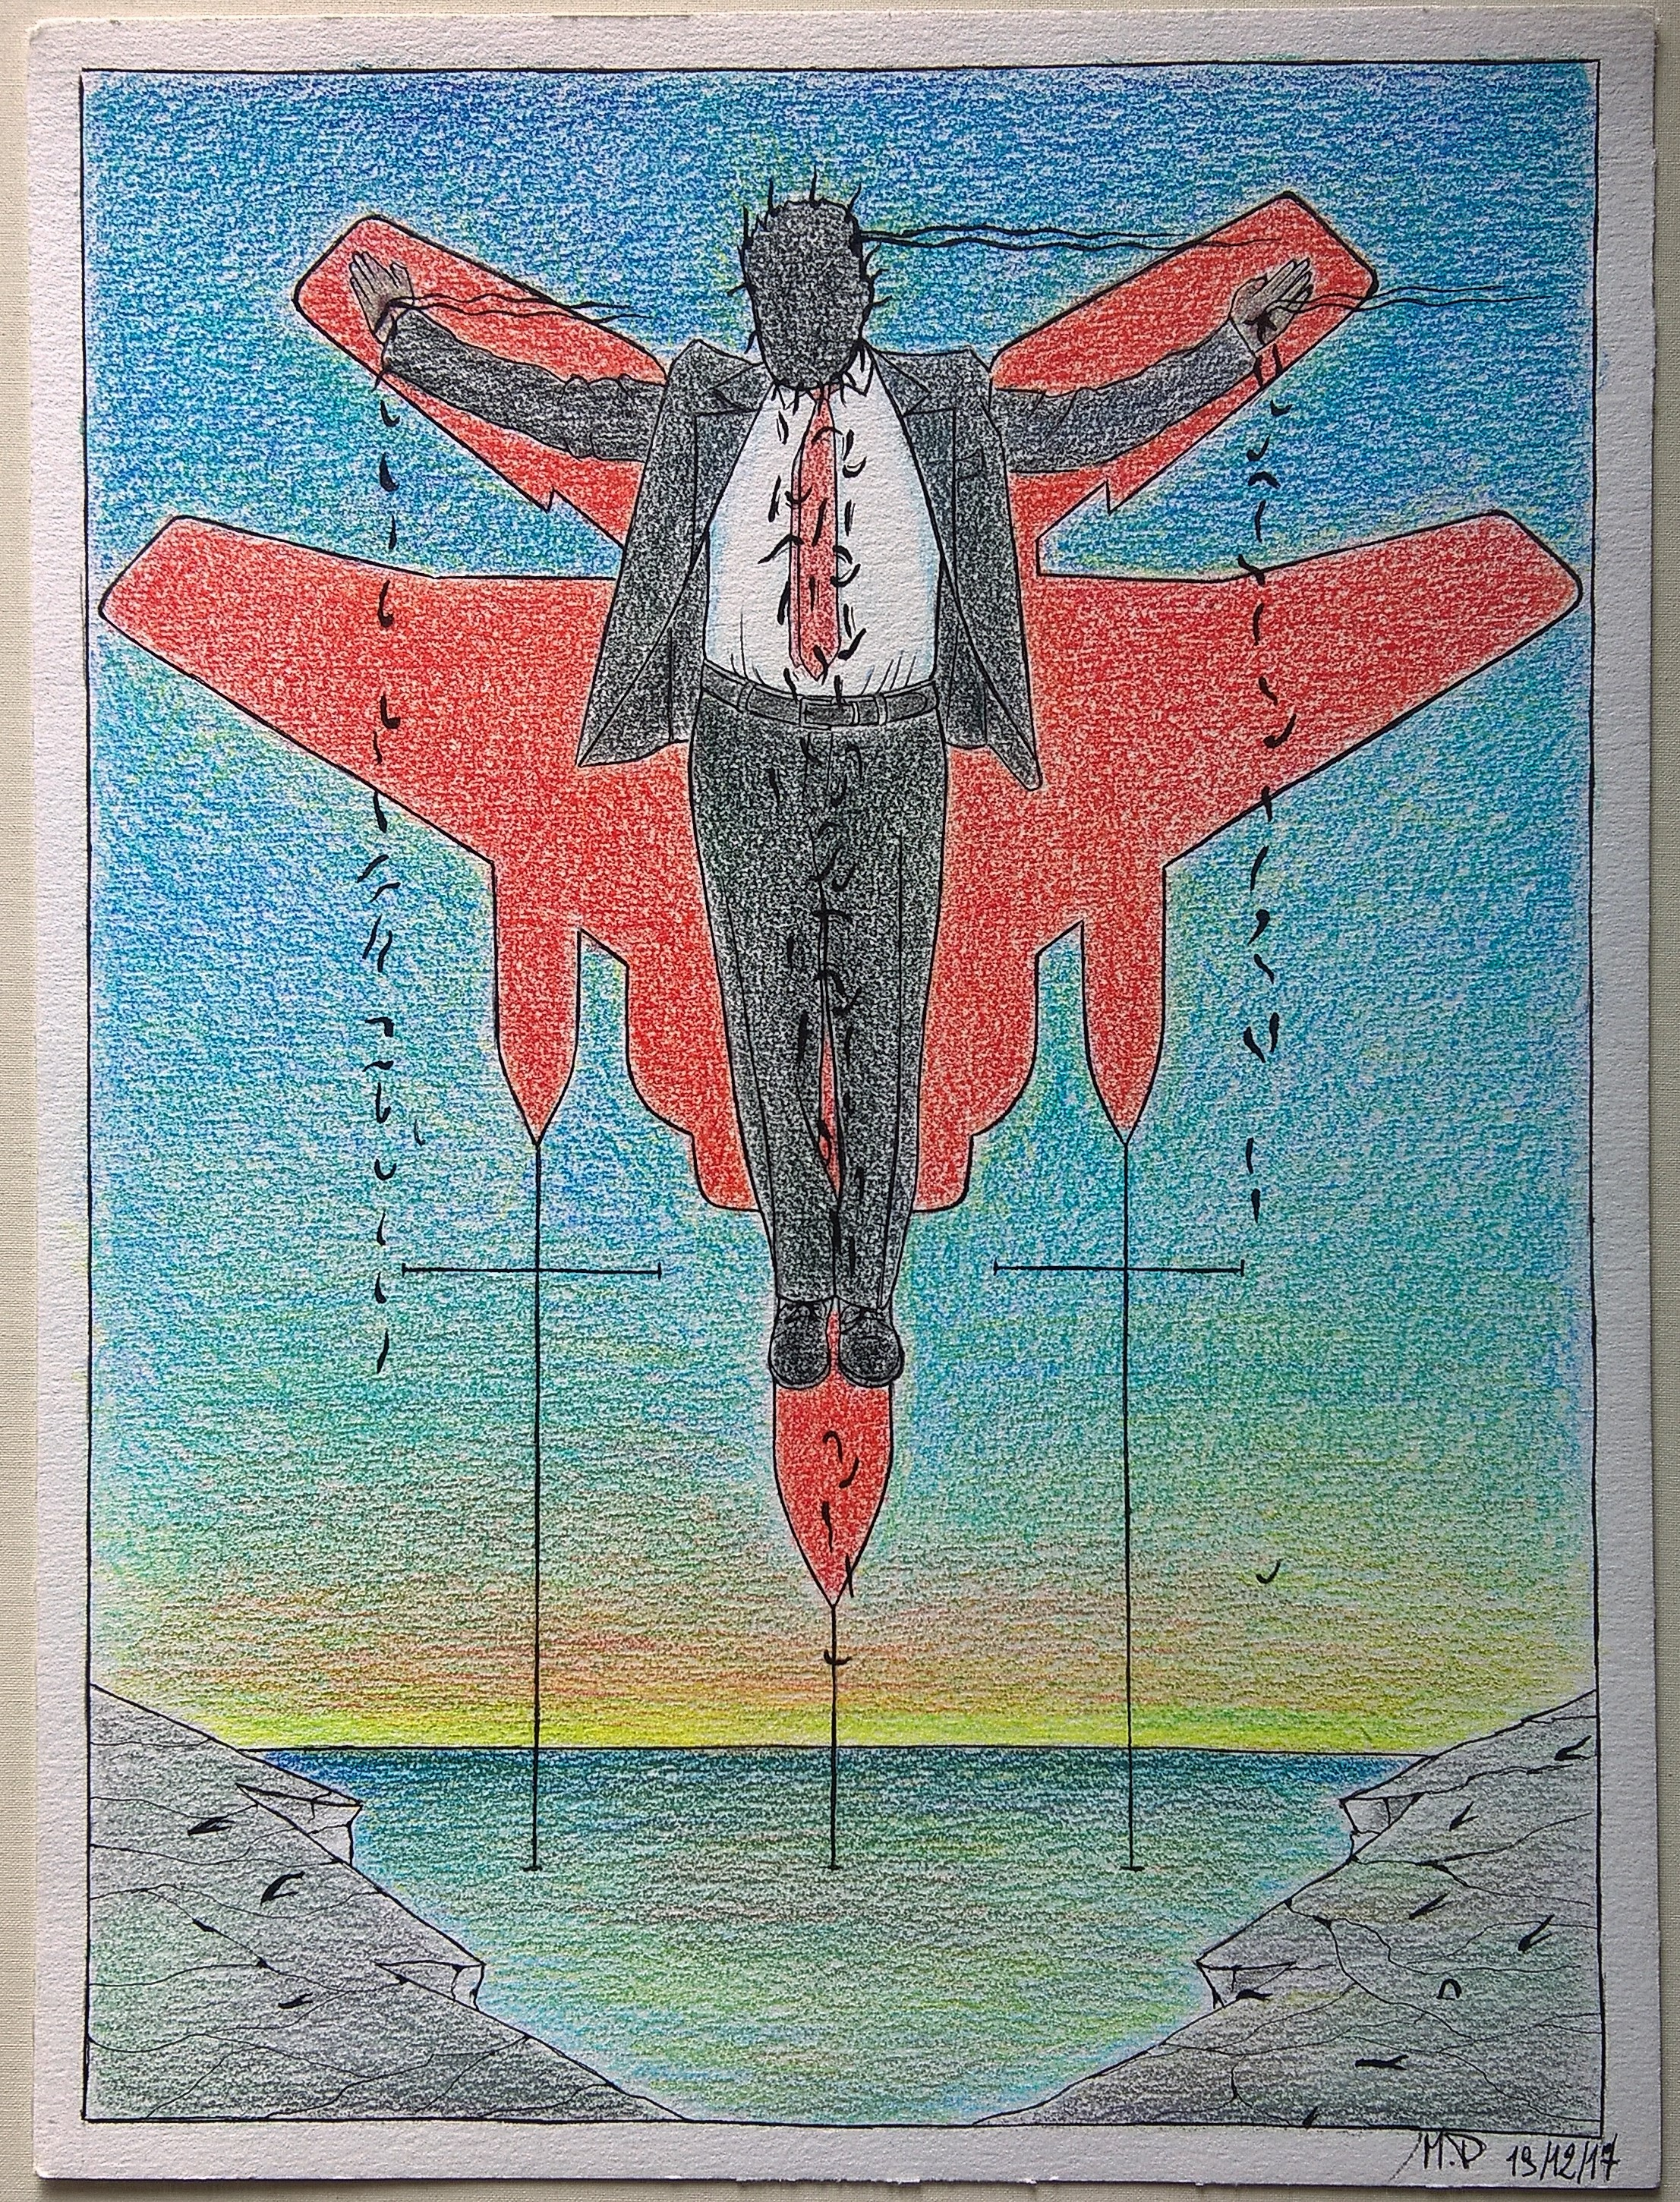 Crocifissione di un colletto bianco (Crucifixion of a white collar),2017 disegno con matite colorate e inchiostro nero ( drawing with colored pencils and black ink), cm 30×40, Pasquale Mastrogiacomo, Acerno (SA).